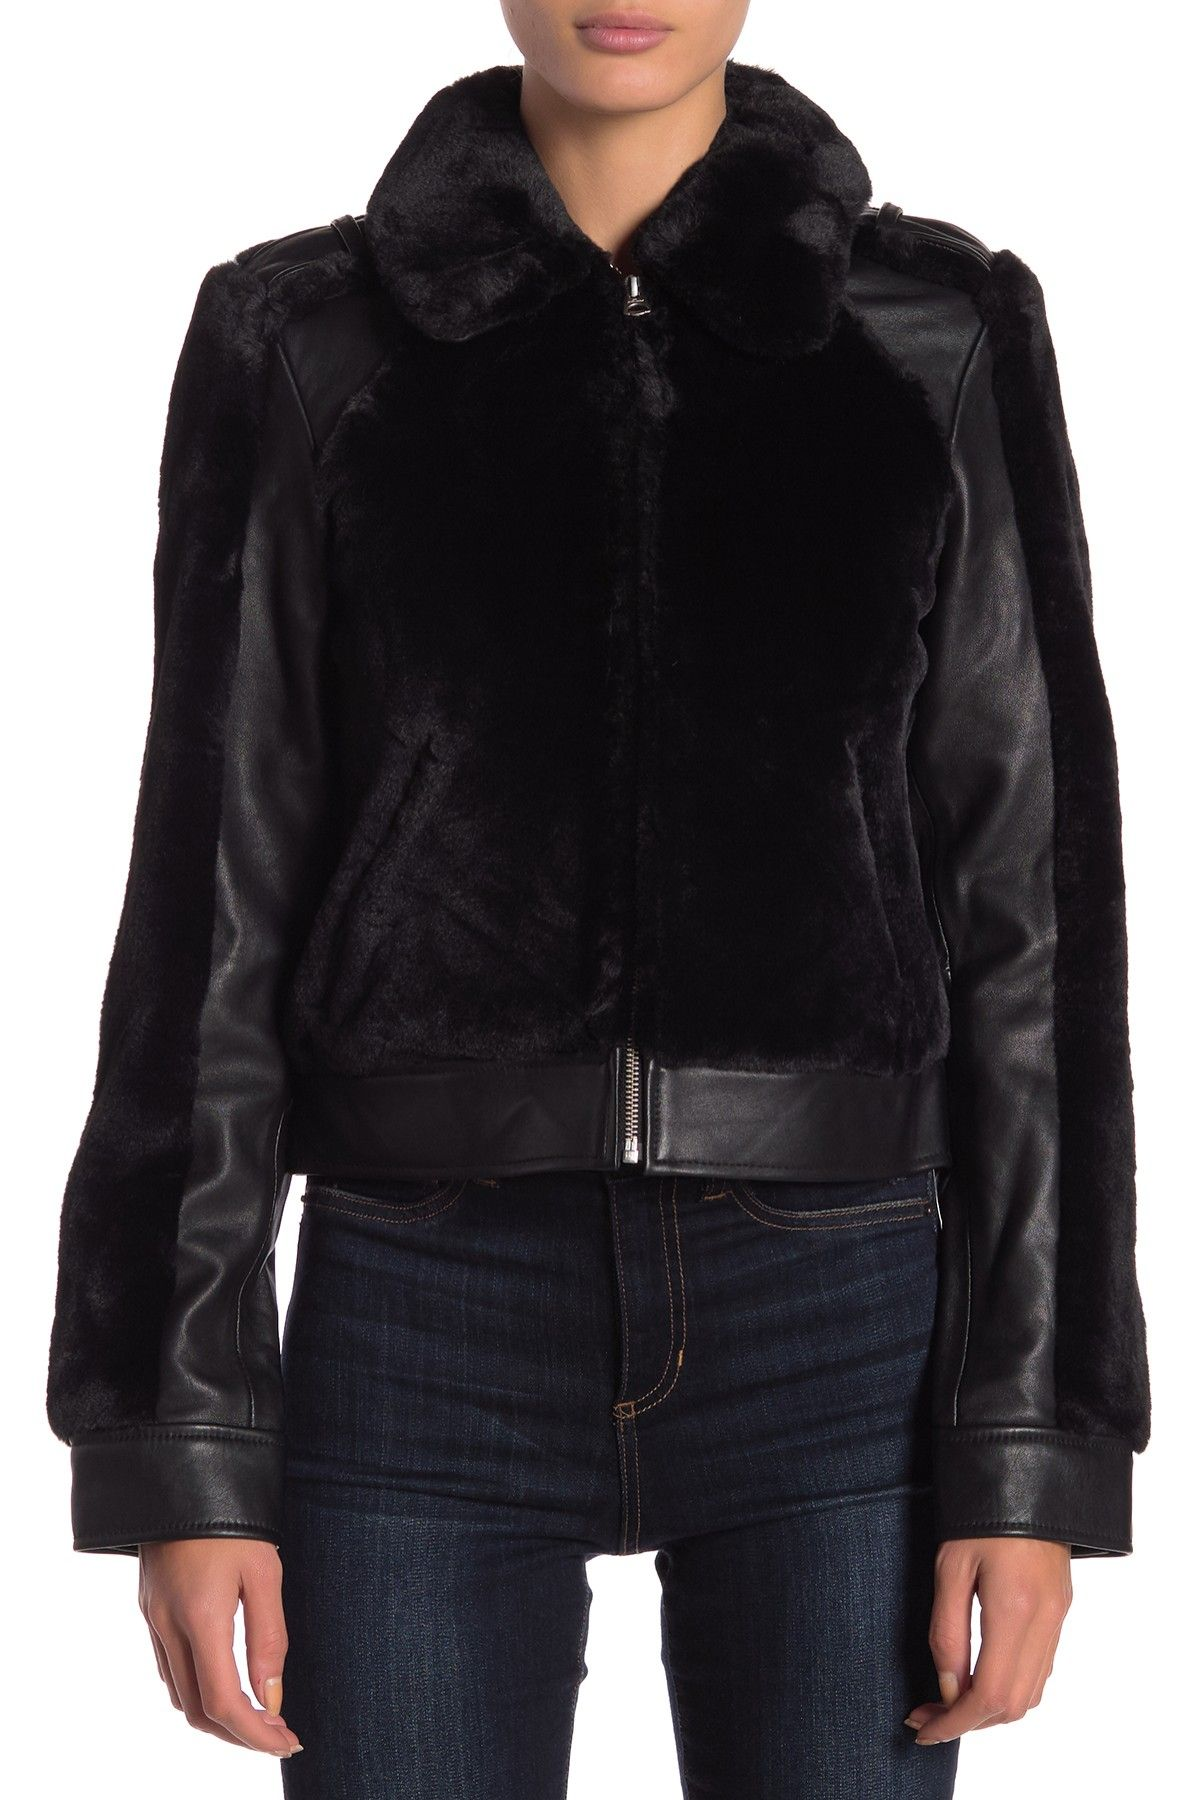 7 For All Mankind Faux Fur & Leather Jacket Fur